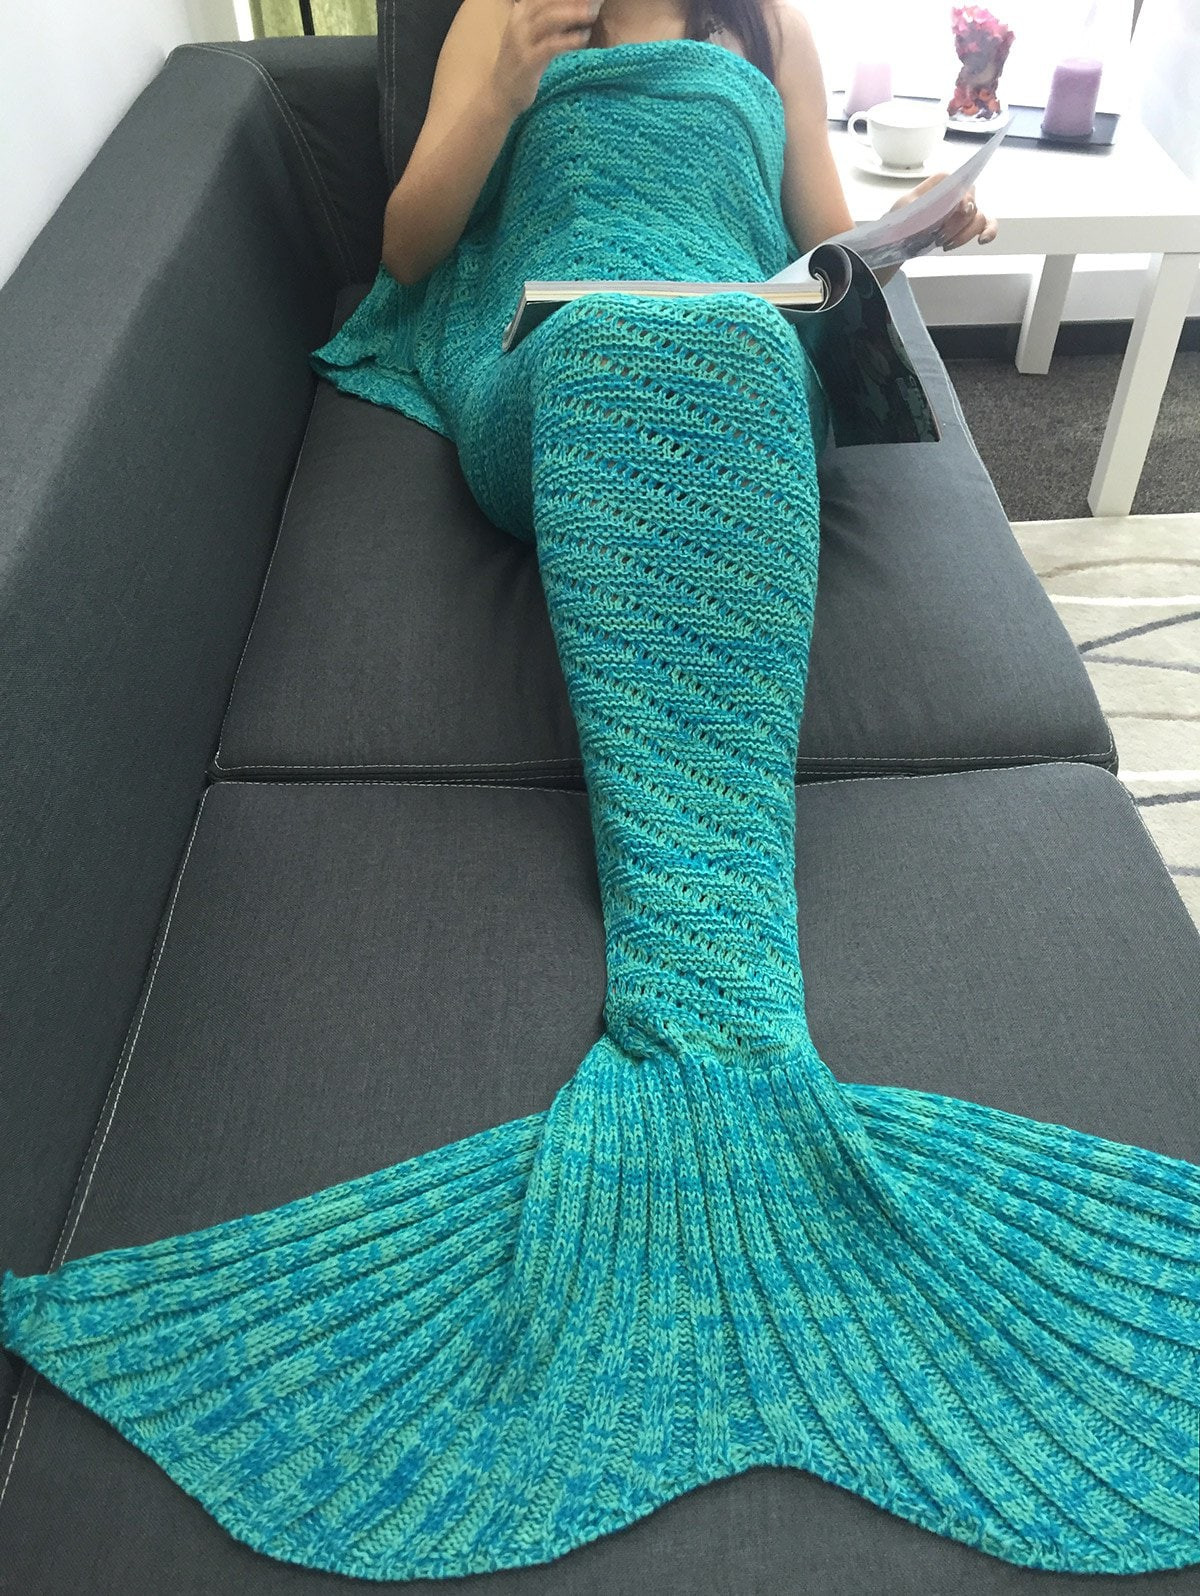 Crochet Mermaid Blanket Beautiful Blankets & Throws Of Unique 48 Images Crochet Mermaid Blanket